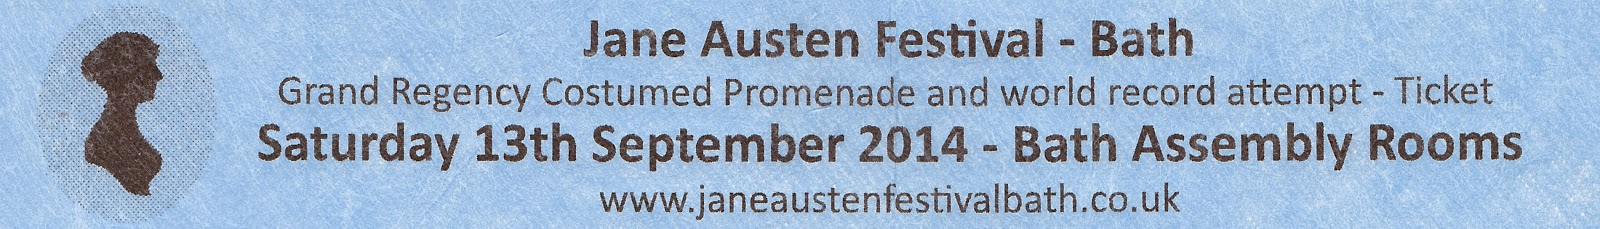 Ticket for the Jane Austen Festival Grand Regency Costumed Promenade